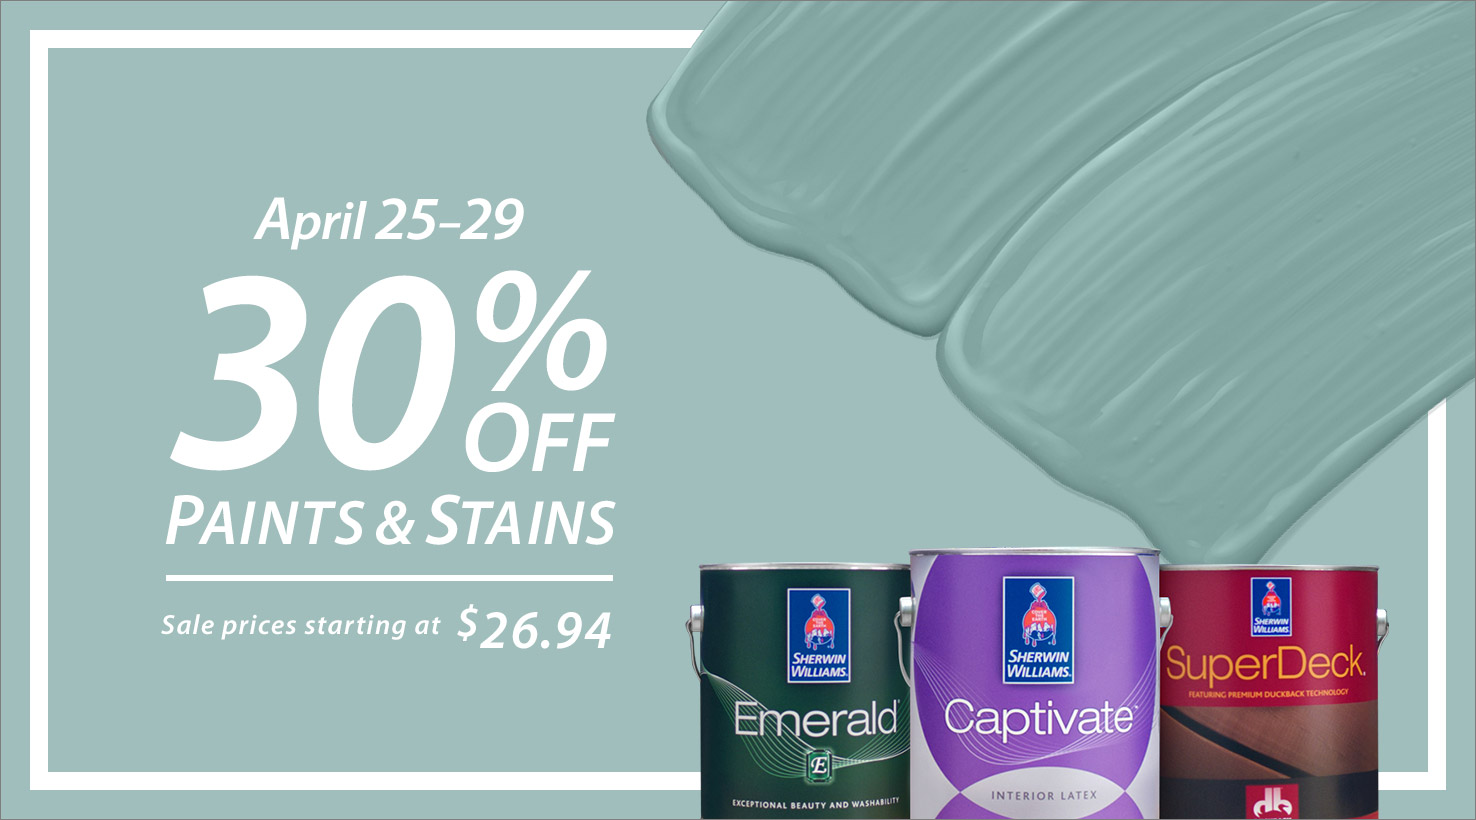 dd6b94fa203a Special Offers by Sherwin-Williams. Explore and Save Today.